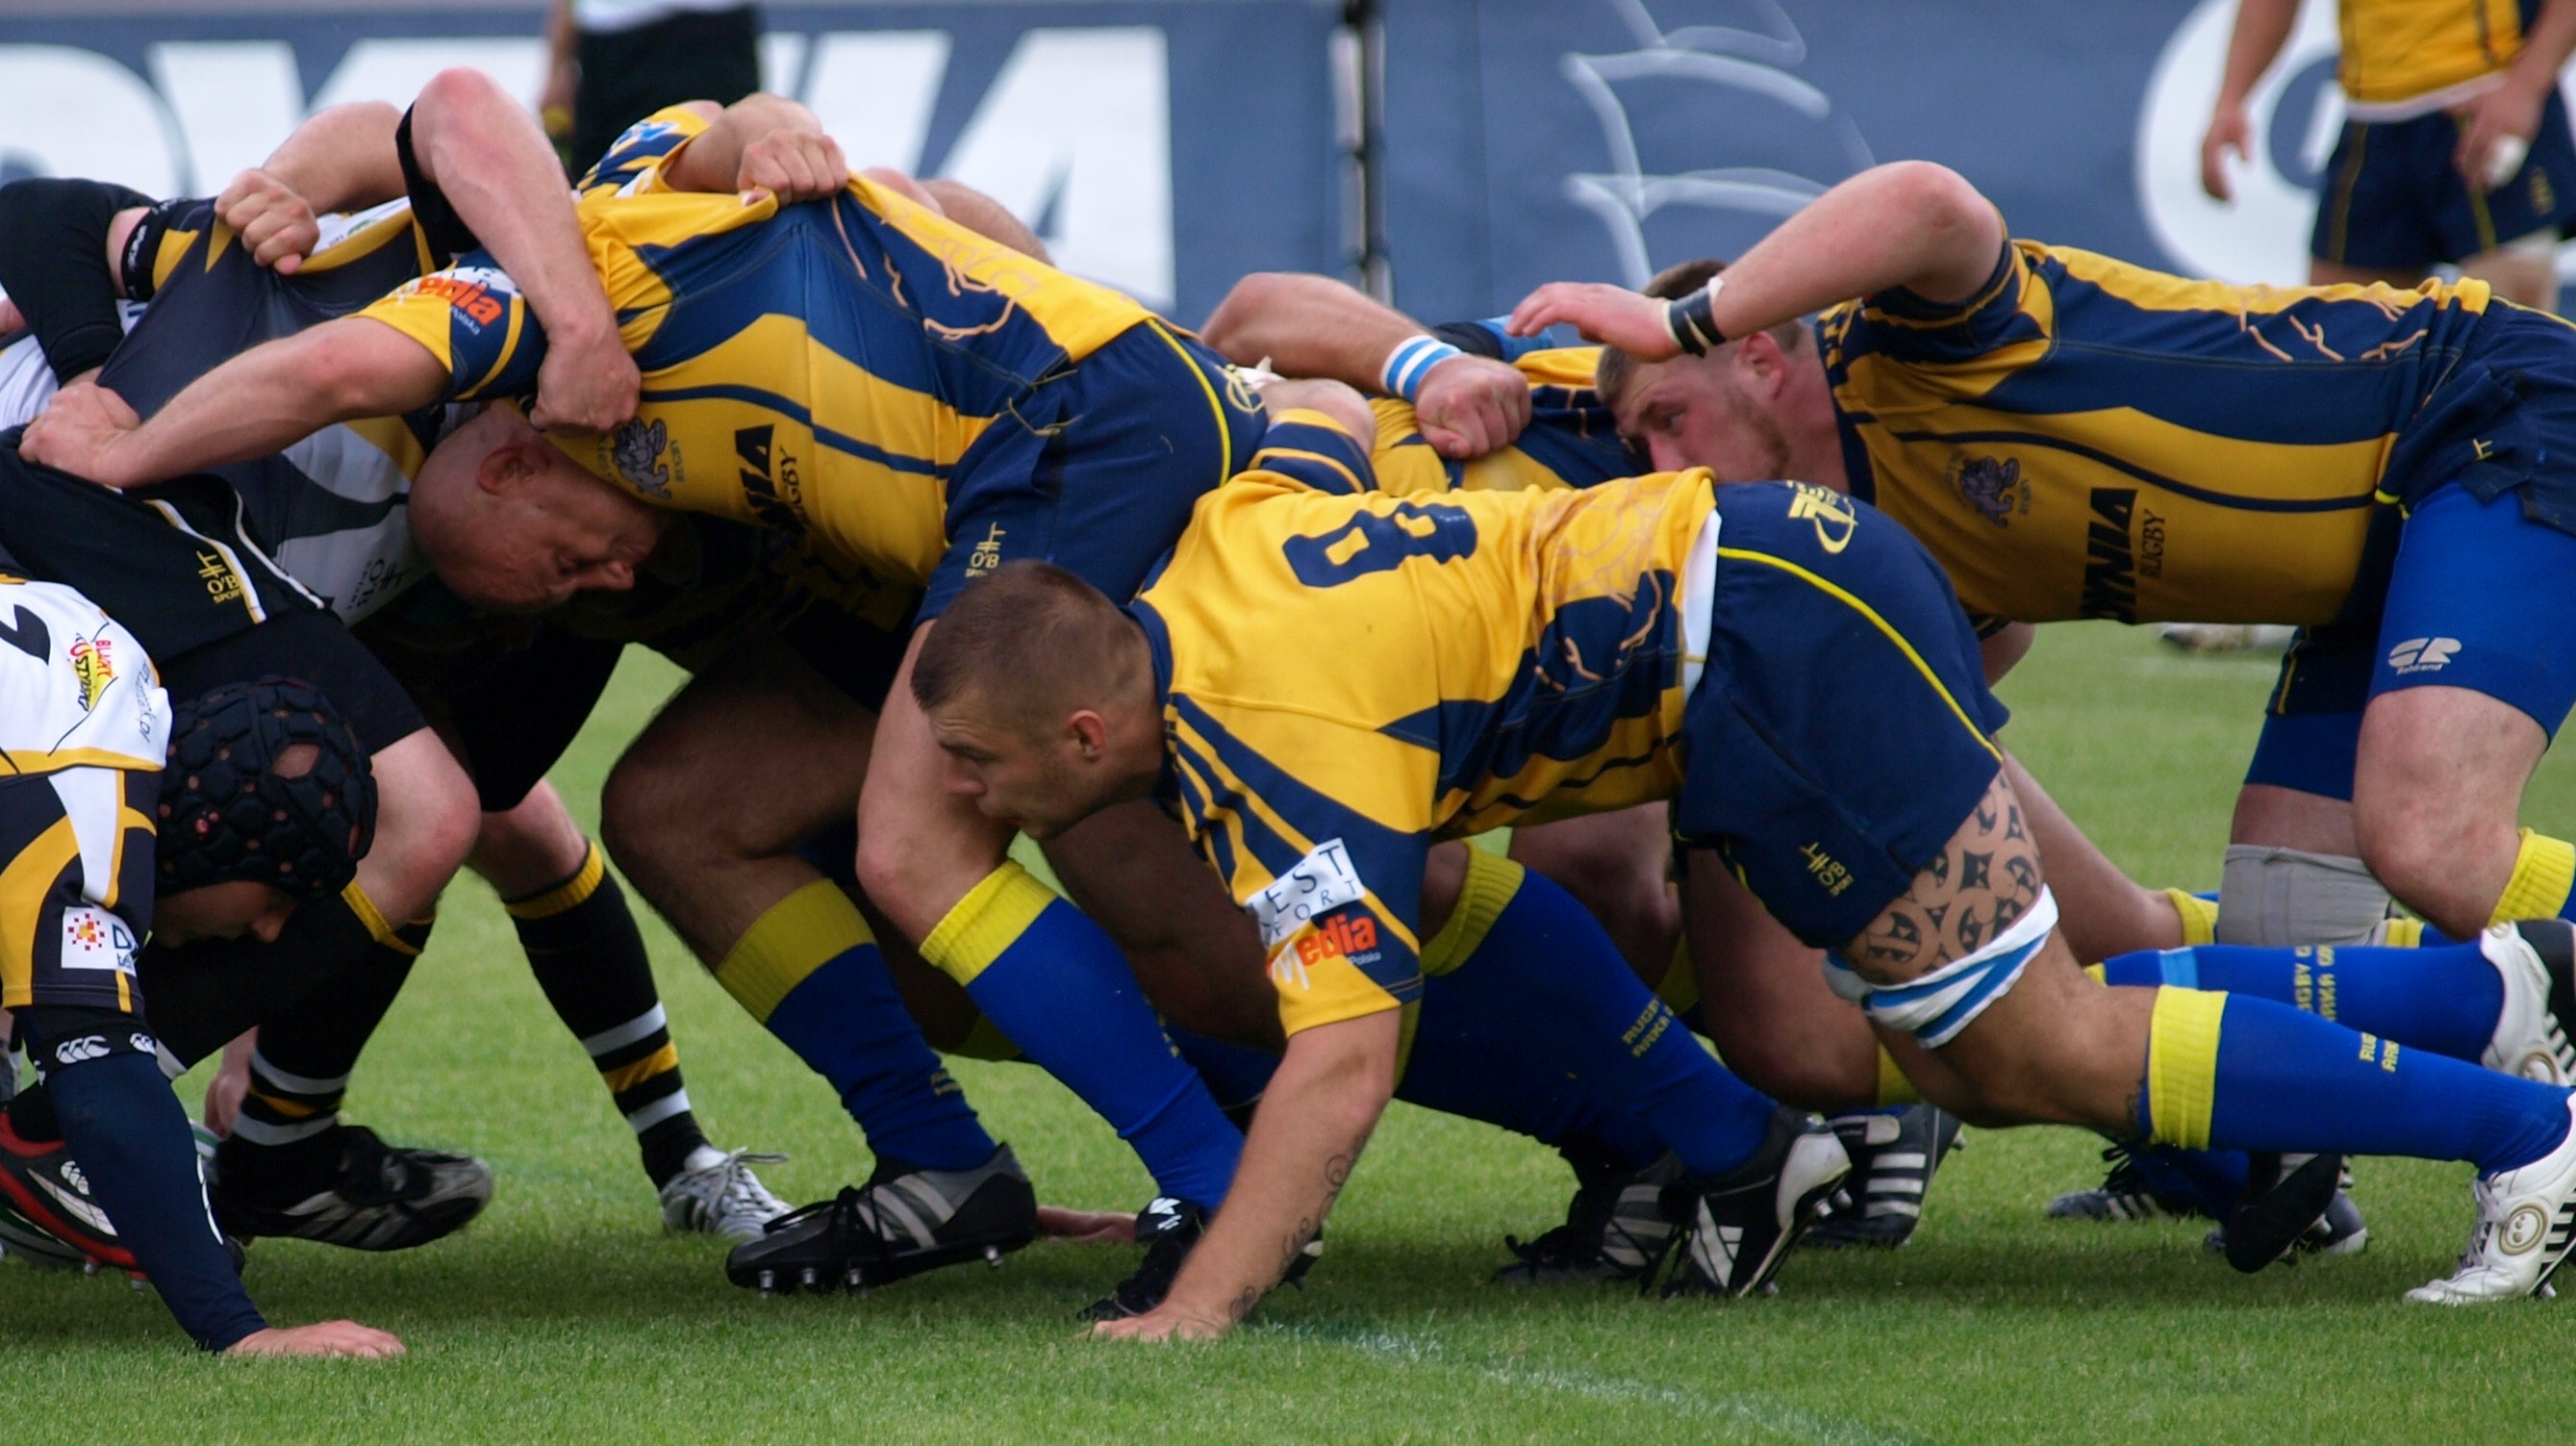 rugby played engage in a scrum